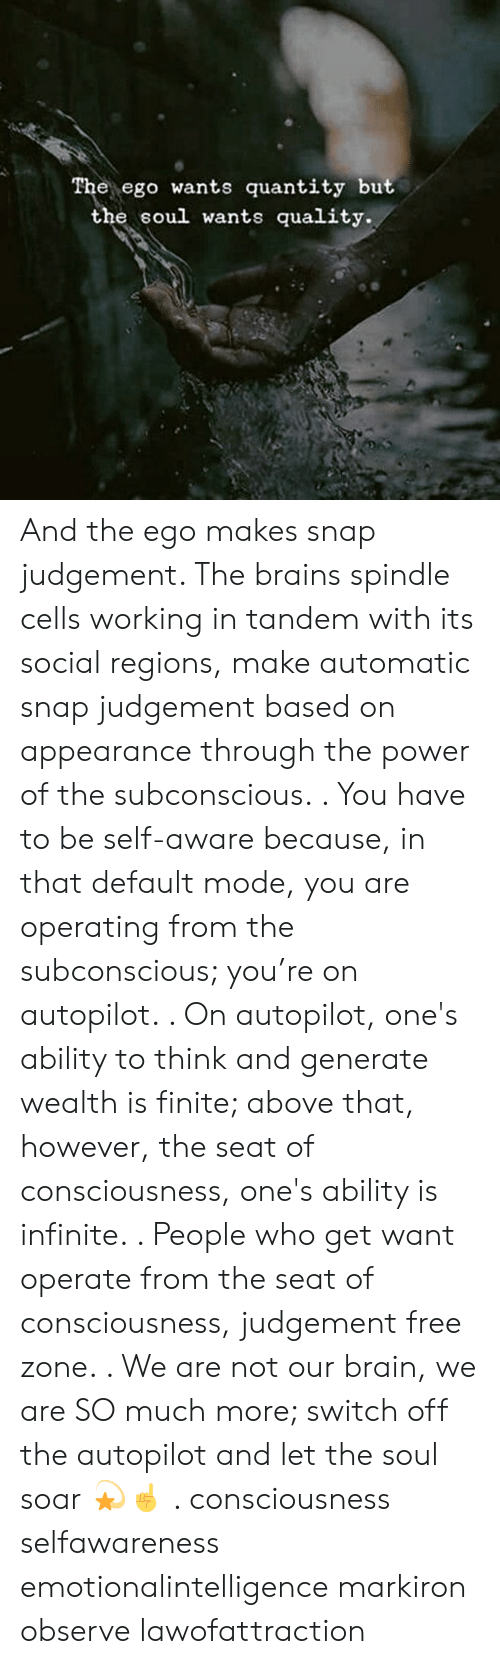 Brains, Memes, and Brain: e ego wants quantity but  the soul wants quality. And the ego makes snap judgement. The brains spindle cells working in tandem with its social regions, make automatic snap judgement based on appearance through the power of the subconscious. . You have to be self-aware because, in that default mode, you are operating from the subconscious; you're on autopilot. . On autopilot, one's ability to think and generate wealth is finite; above that, however, the seat of consciousness, one's ability is infinite. . People who get want operate from the seat of consciousness, judgement free zone. . We are not our brain, we are SO much more; switch off the autopilot and let the soul soar 💫☝️ . consciousness selfawareness emotionalintelligence markiron observe lawofattraction